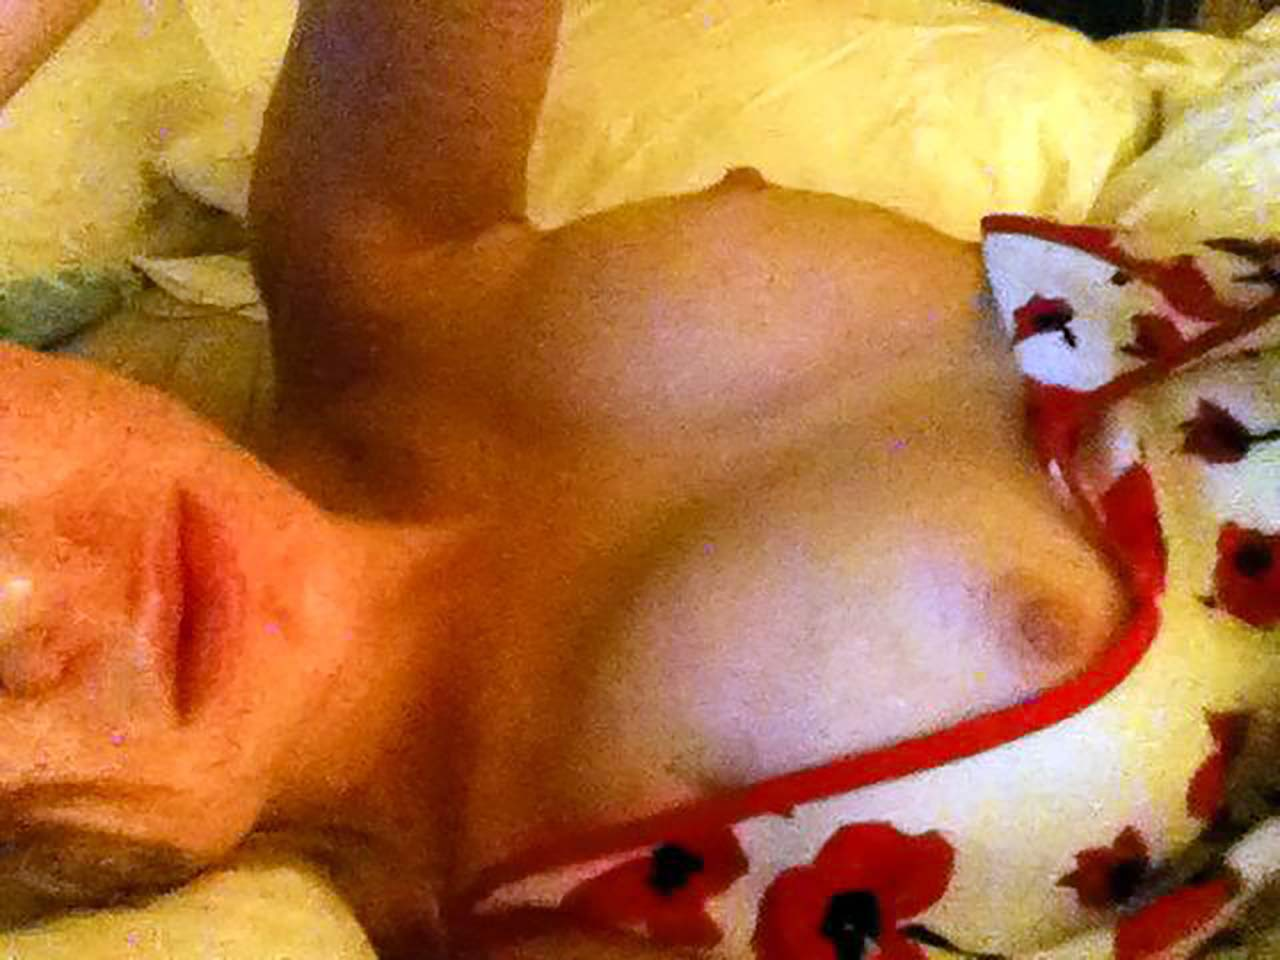 Amy Willerton Tits amy willerton naked pussy & boobs on leaked photos - scandalpost